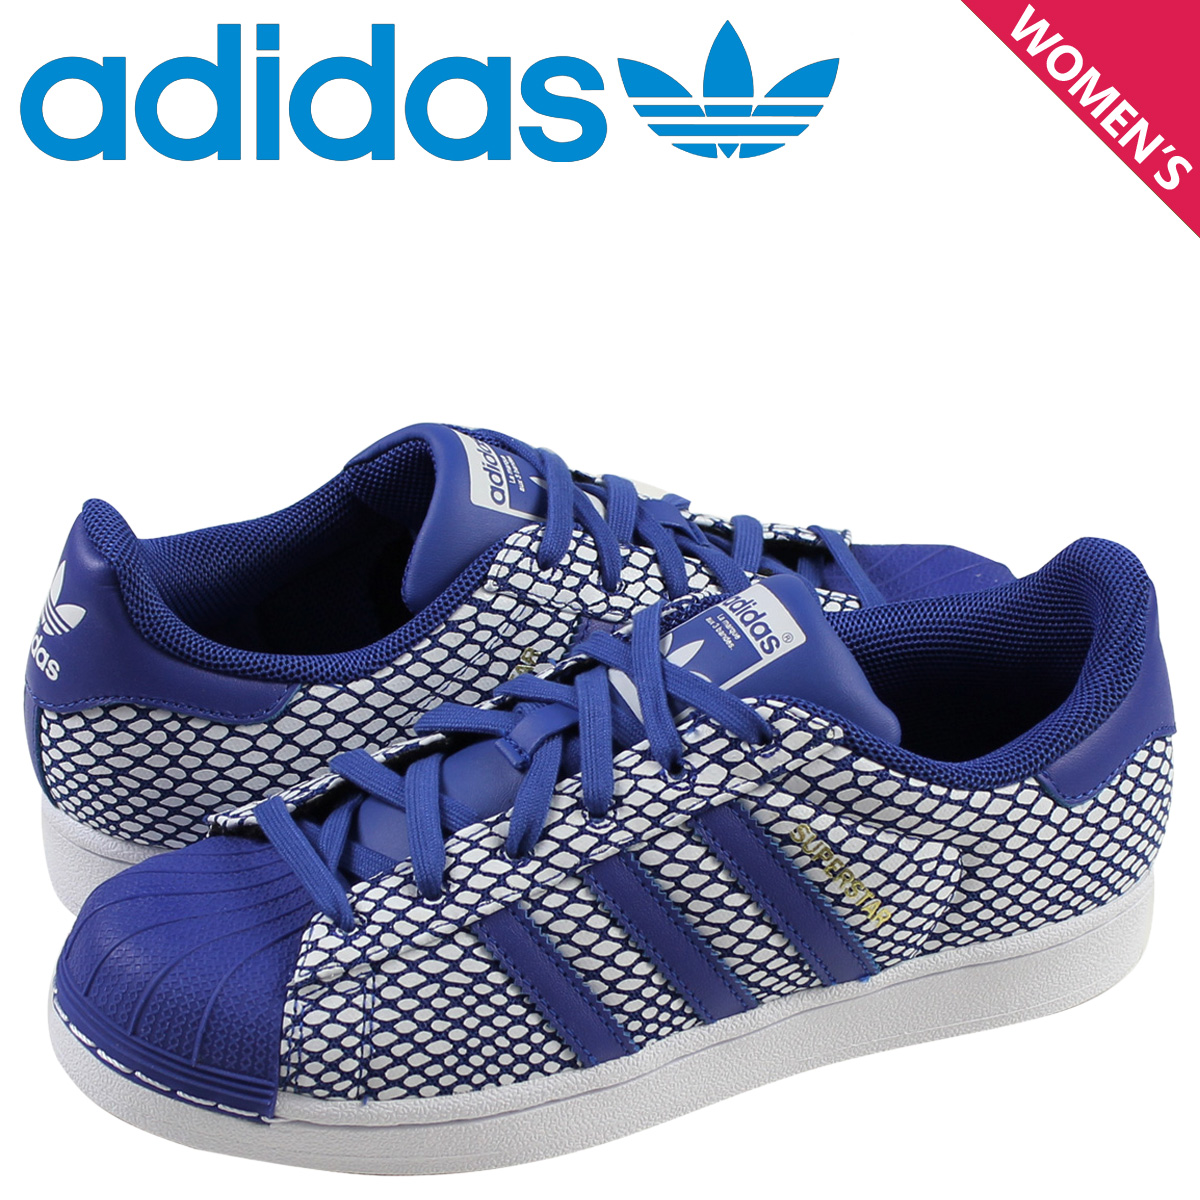 d8124728035 Whats up Sports: adidas Originals adidas originals superstar ...